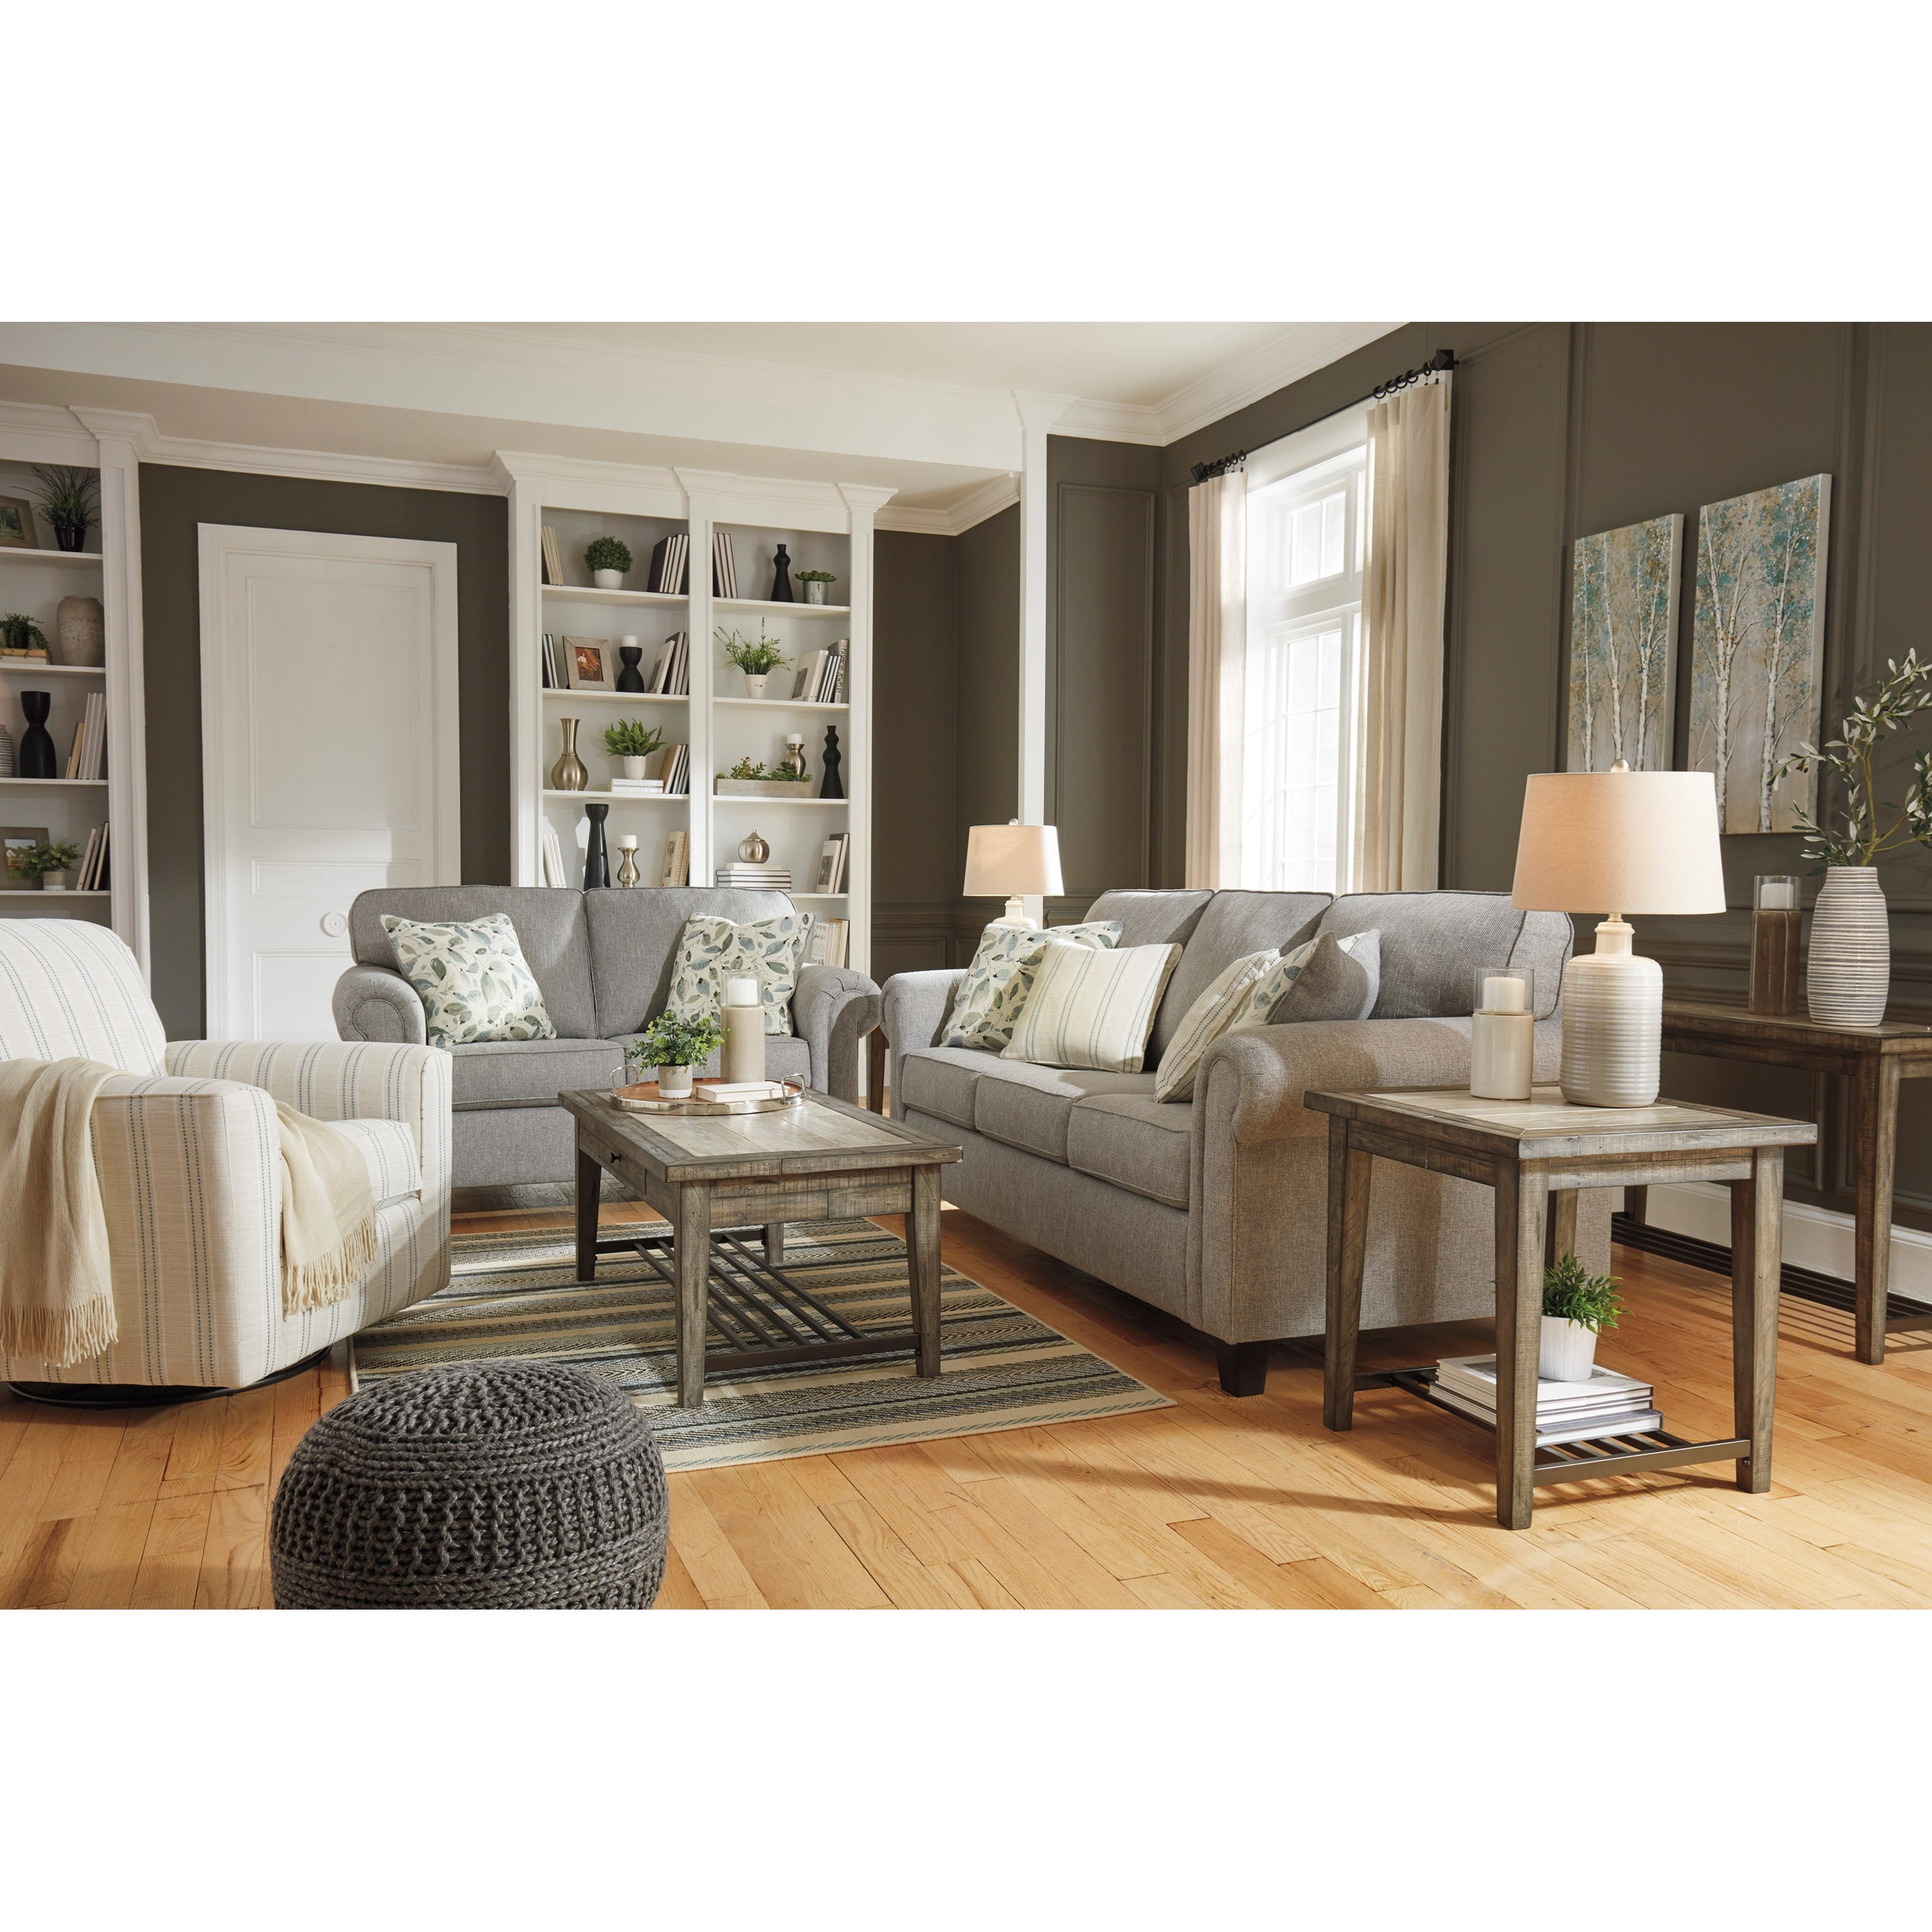 Alandari Stationary Living Room Group by Signature Design by Ashley at Gill Brothers Furniture